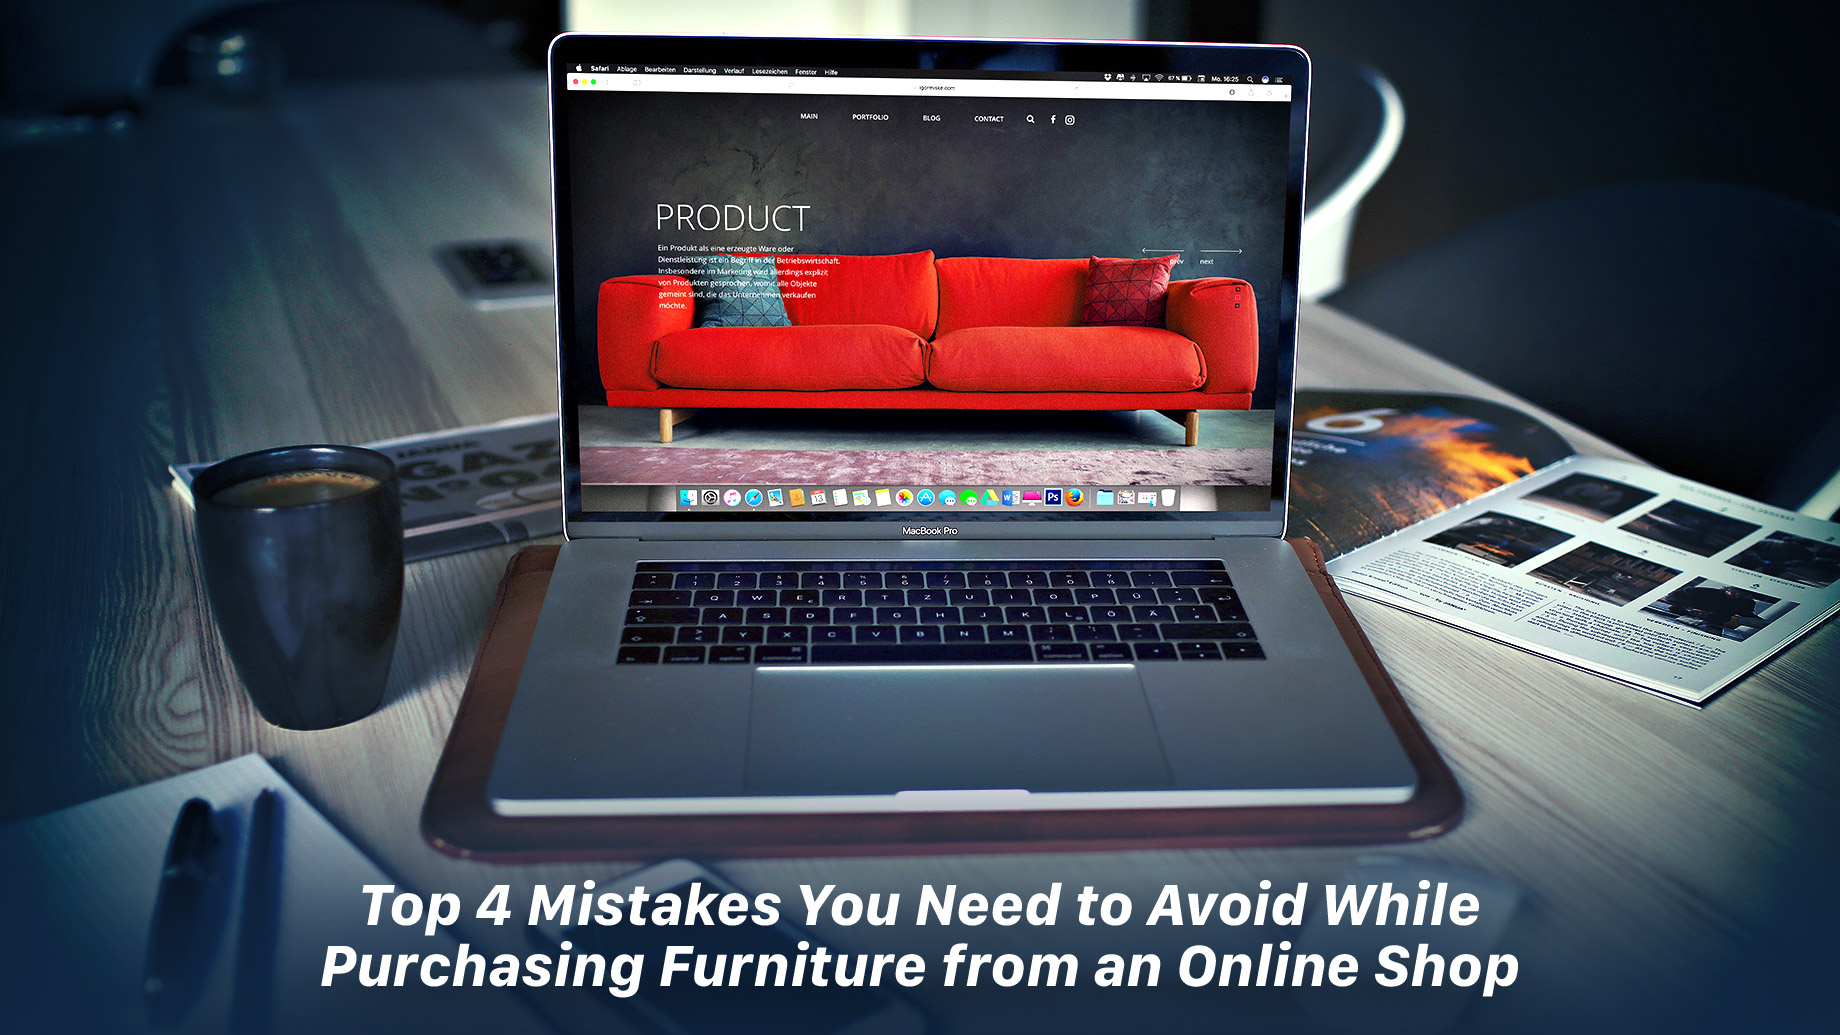 Top 4 Mistakes You Need to Avoid While Purchasing Furniture from an Online Shop